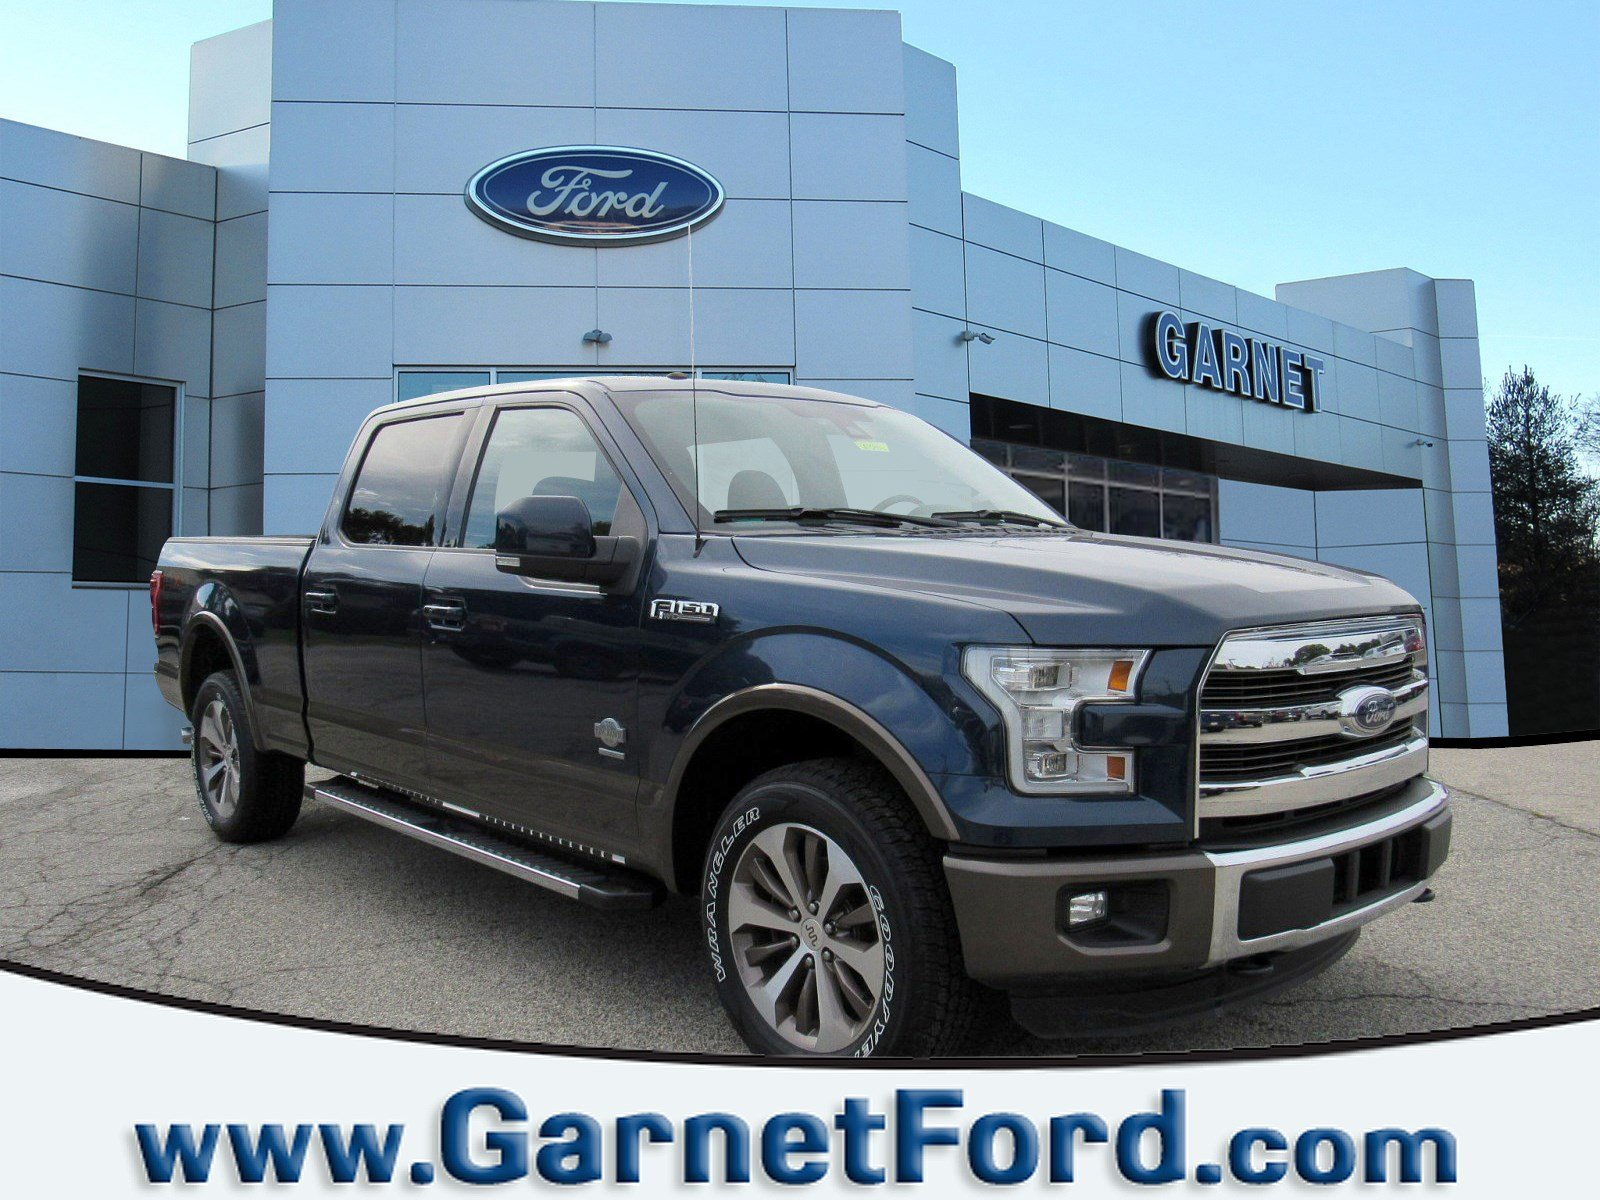 2016 Ford F-150 C/C King Ranch 4x4 4WD SuperCrew 157 King Ranch